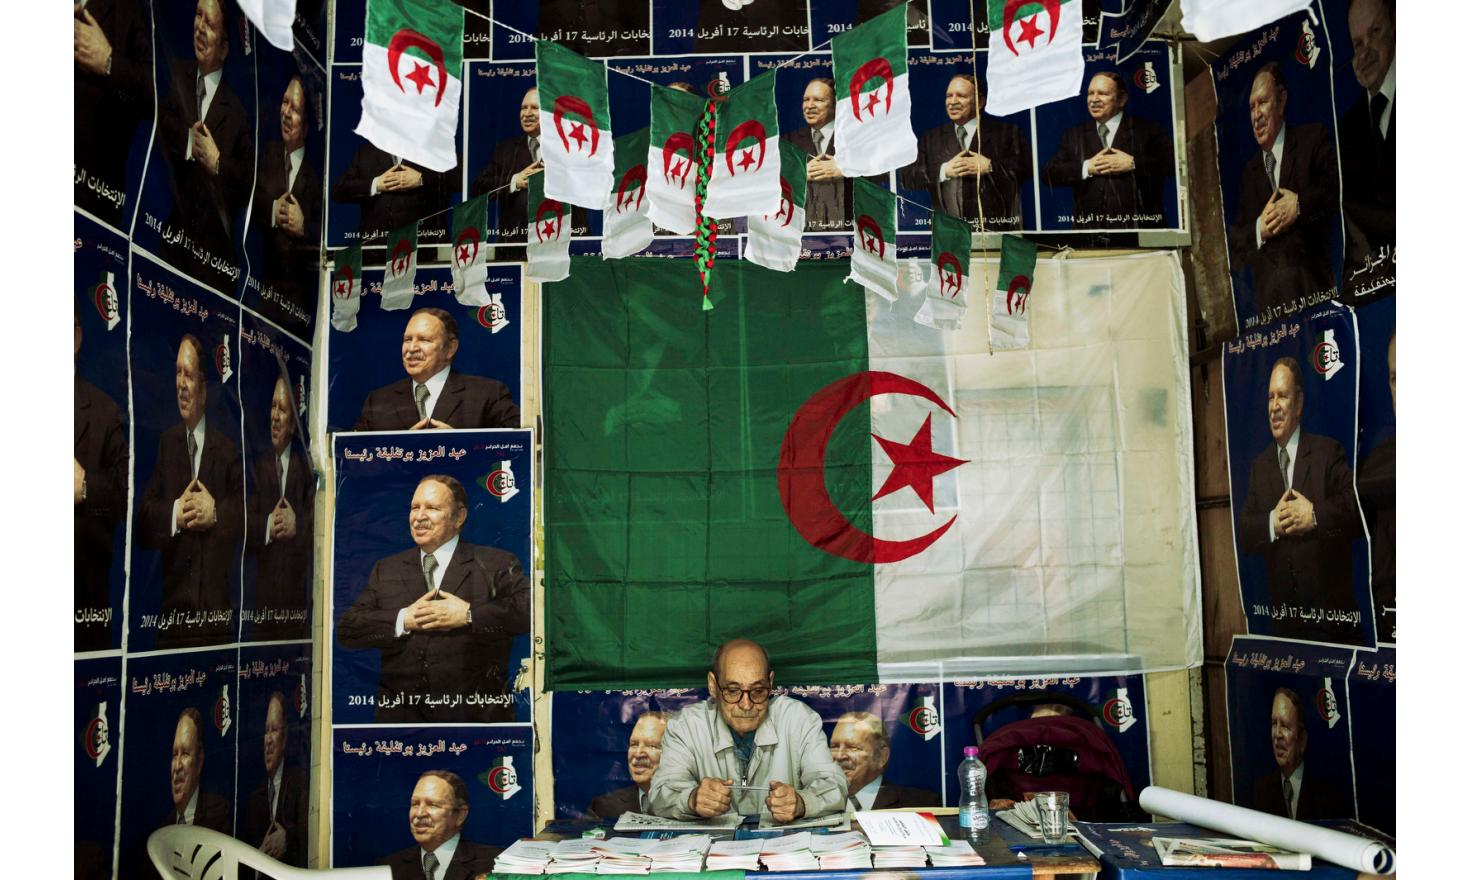 Algiers. President Bouteflika's supporters office